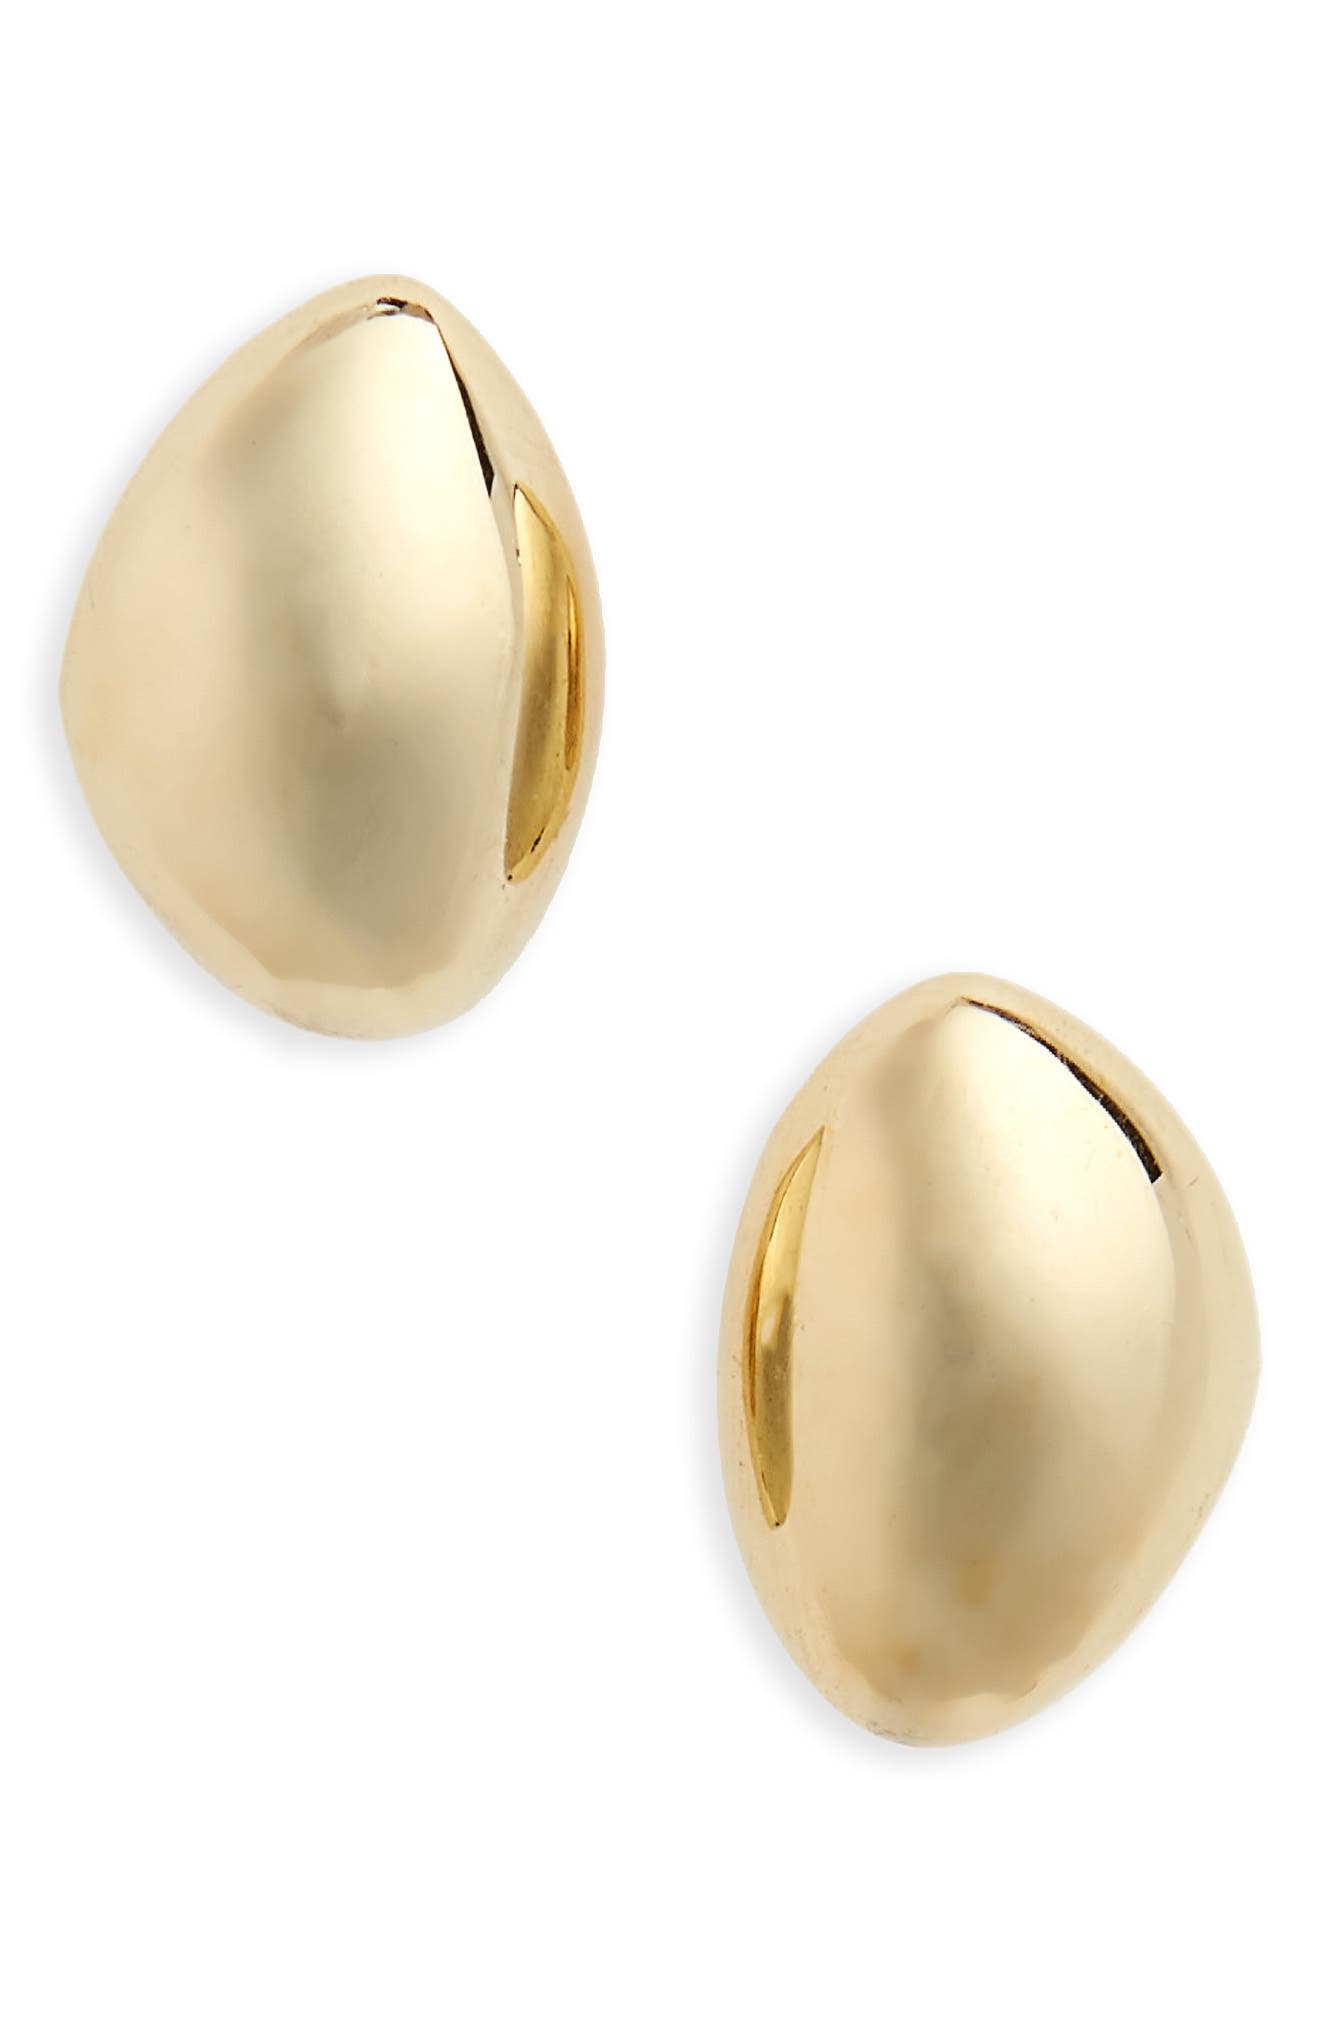 Sabi Stud Earrings,                         Main,                         color, Brass